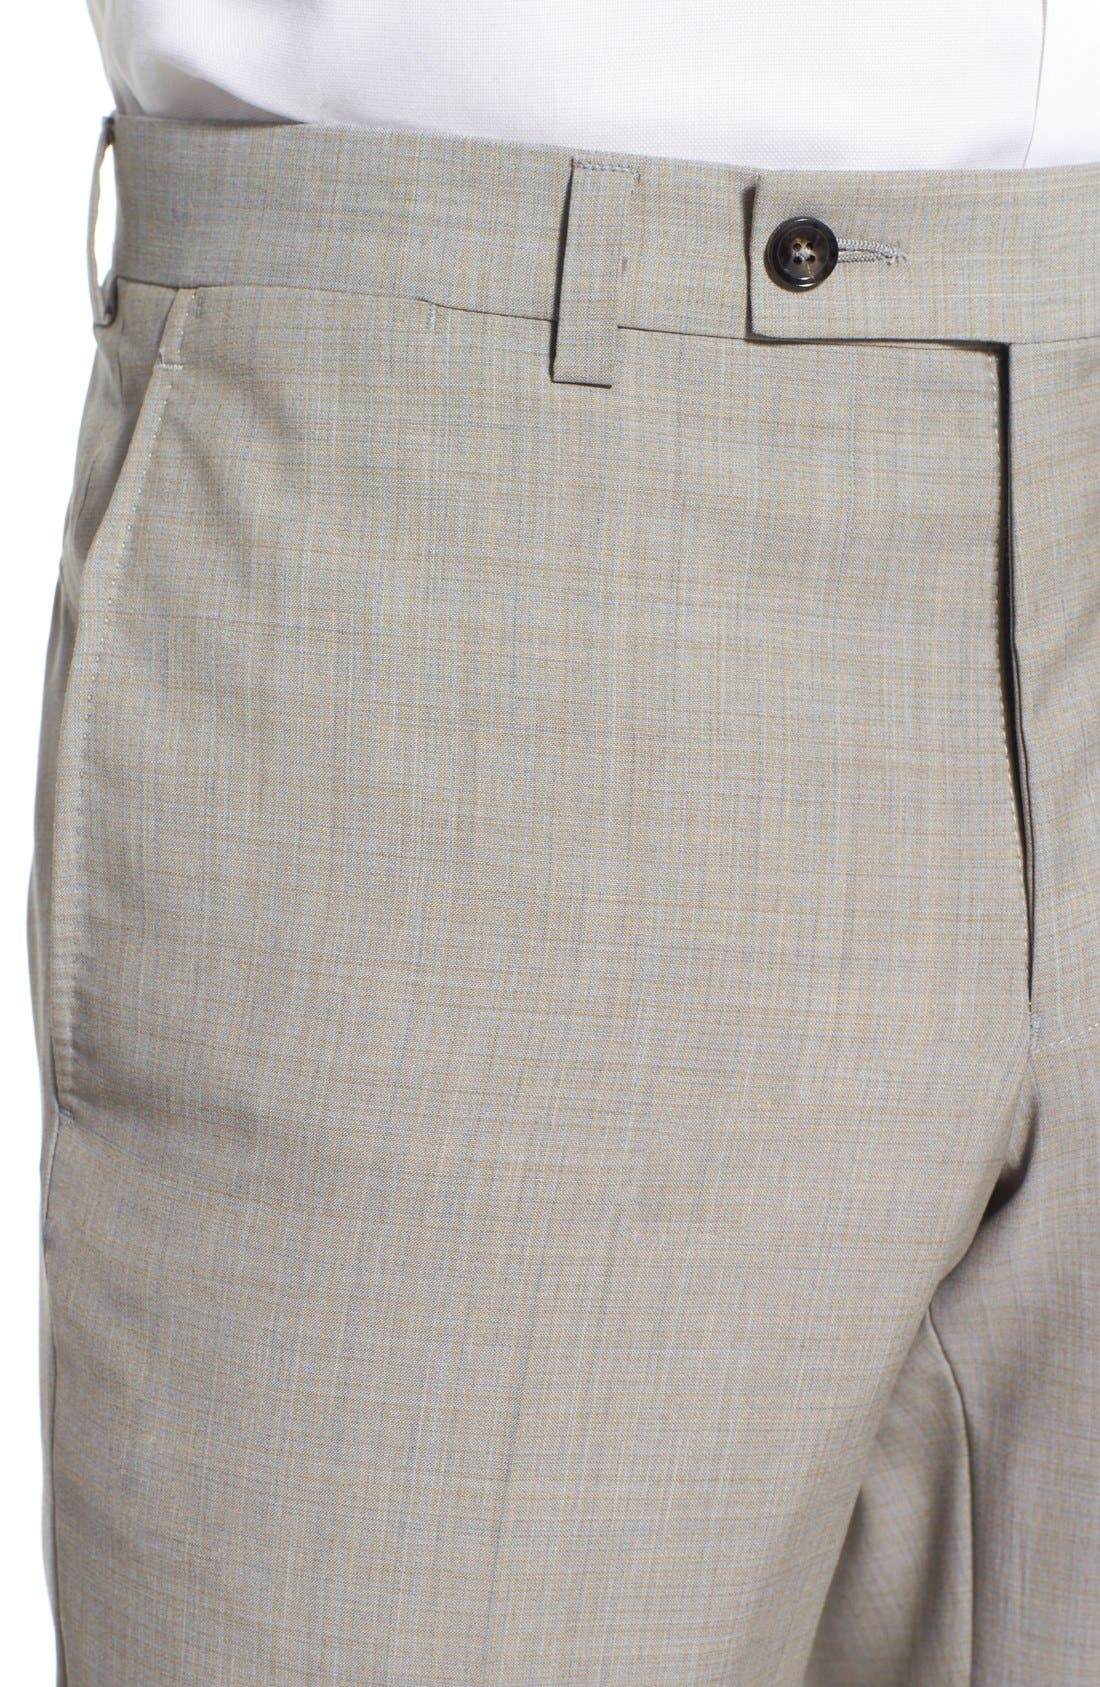 'Jefferson' Flat Front Solid Wool Trousers,                             Alternate thumbnail 5, color,                             Tan